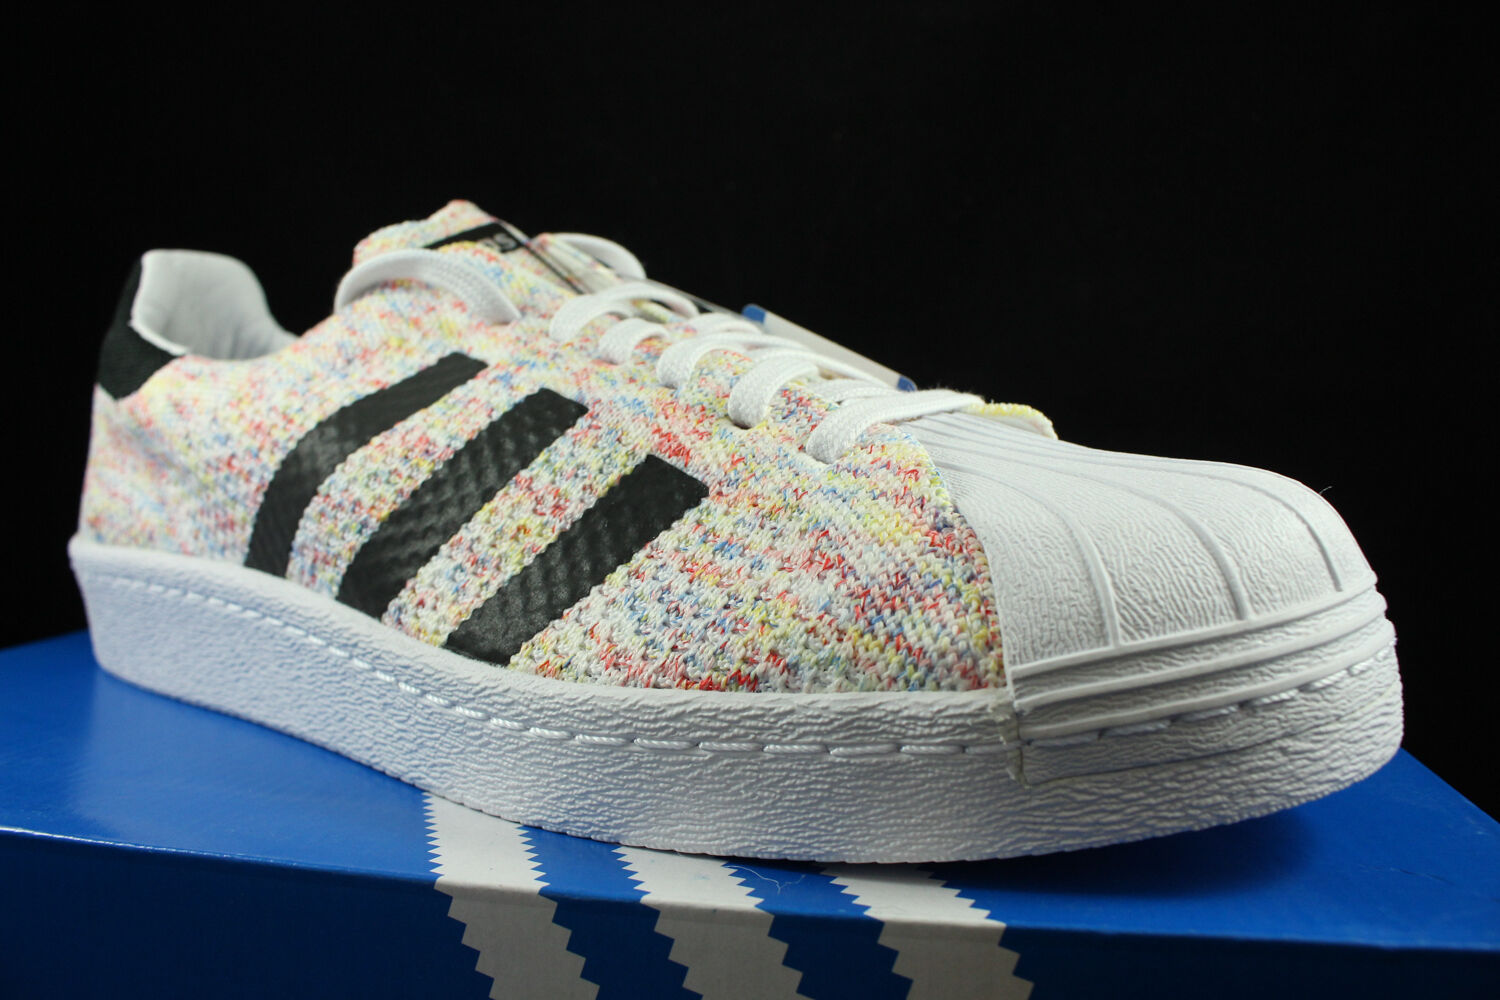 ADIDAS SUPERSTAR 80 'S PACK MULTICOLOR WHITE BLACK PK PRIME KNIT S75845 SZ 9